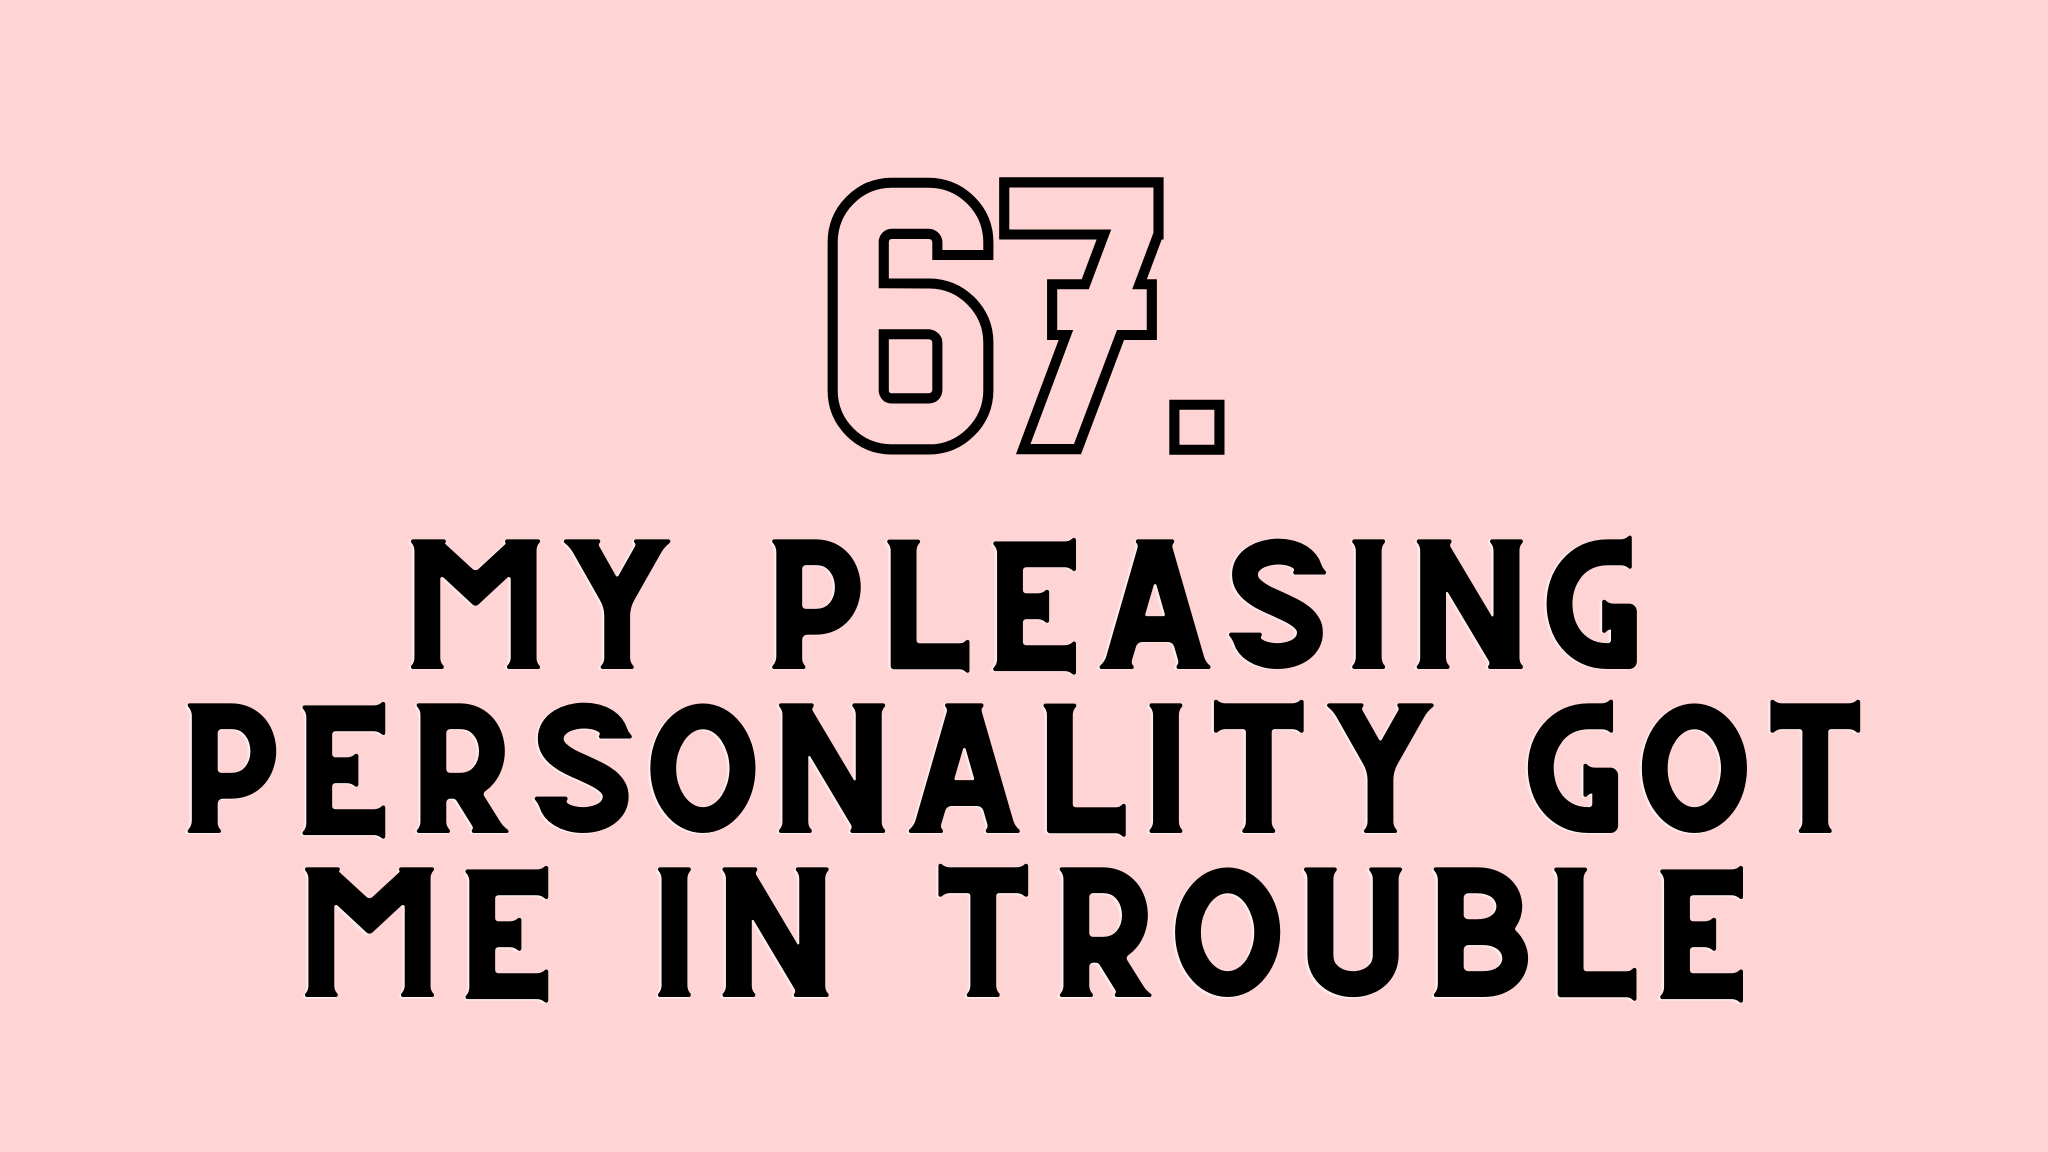 my pleasing personality